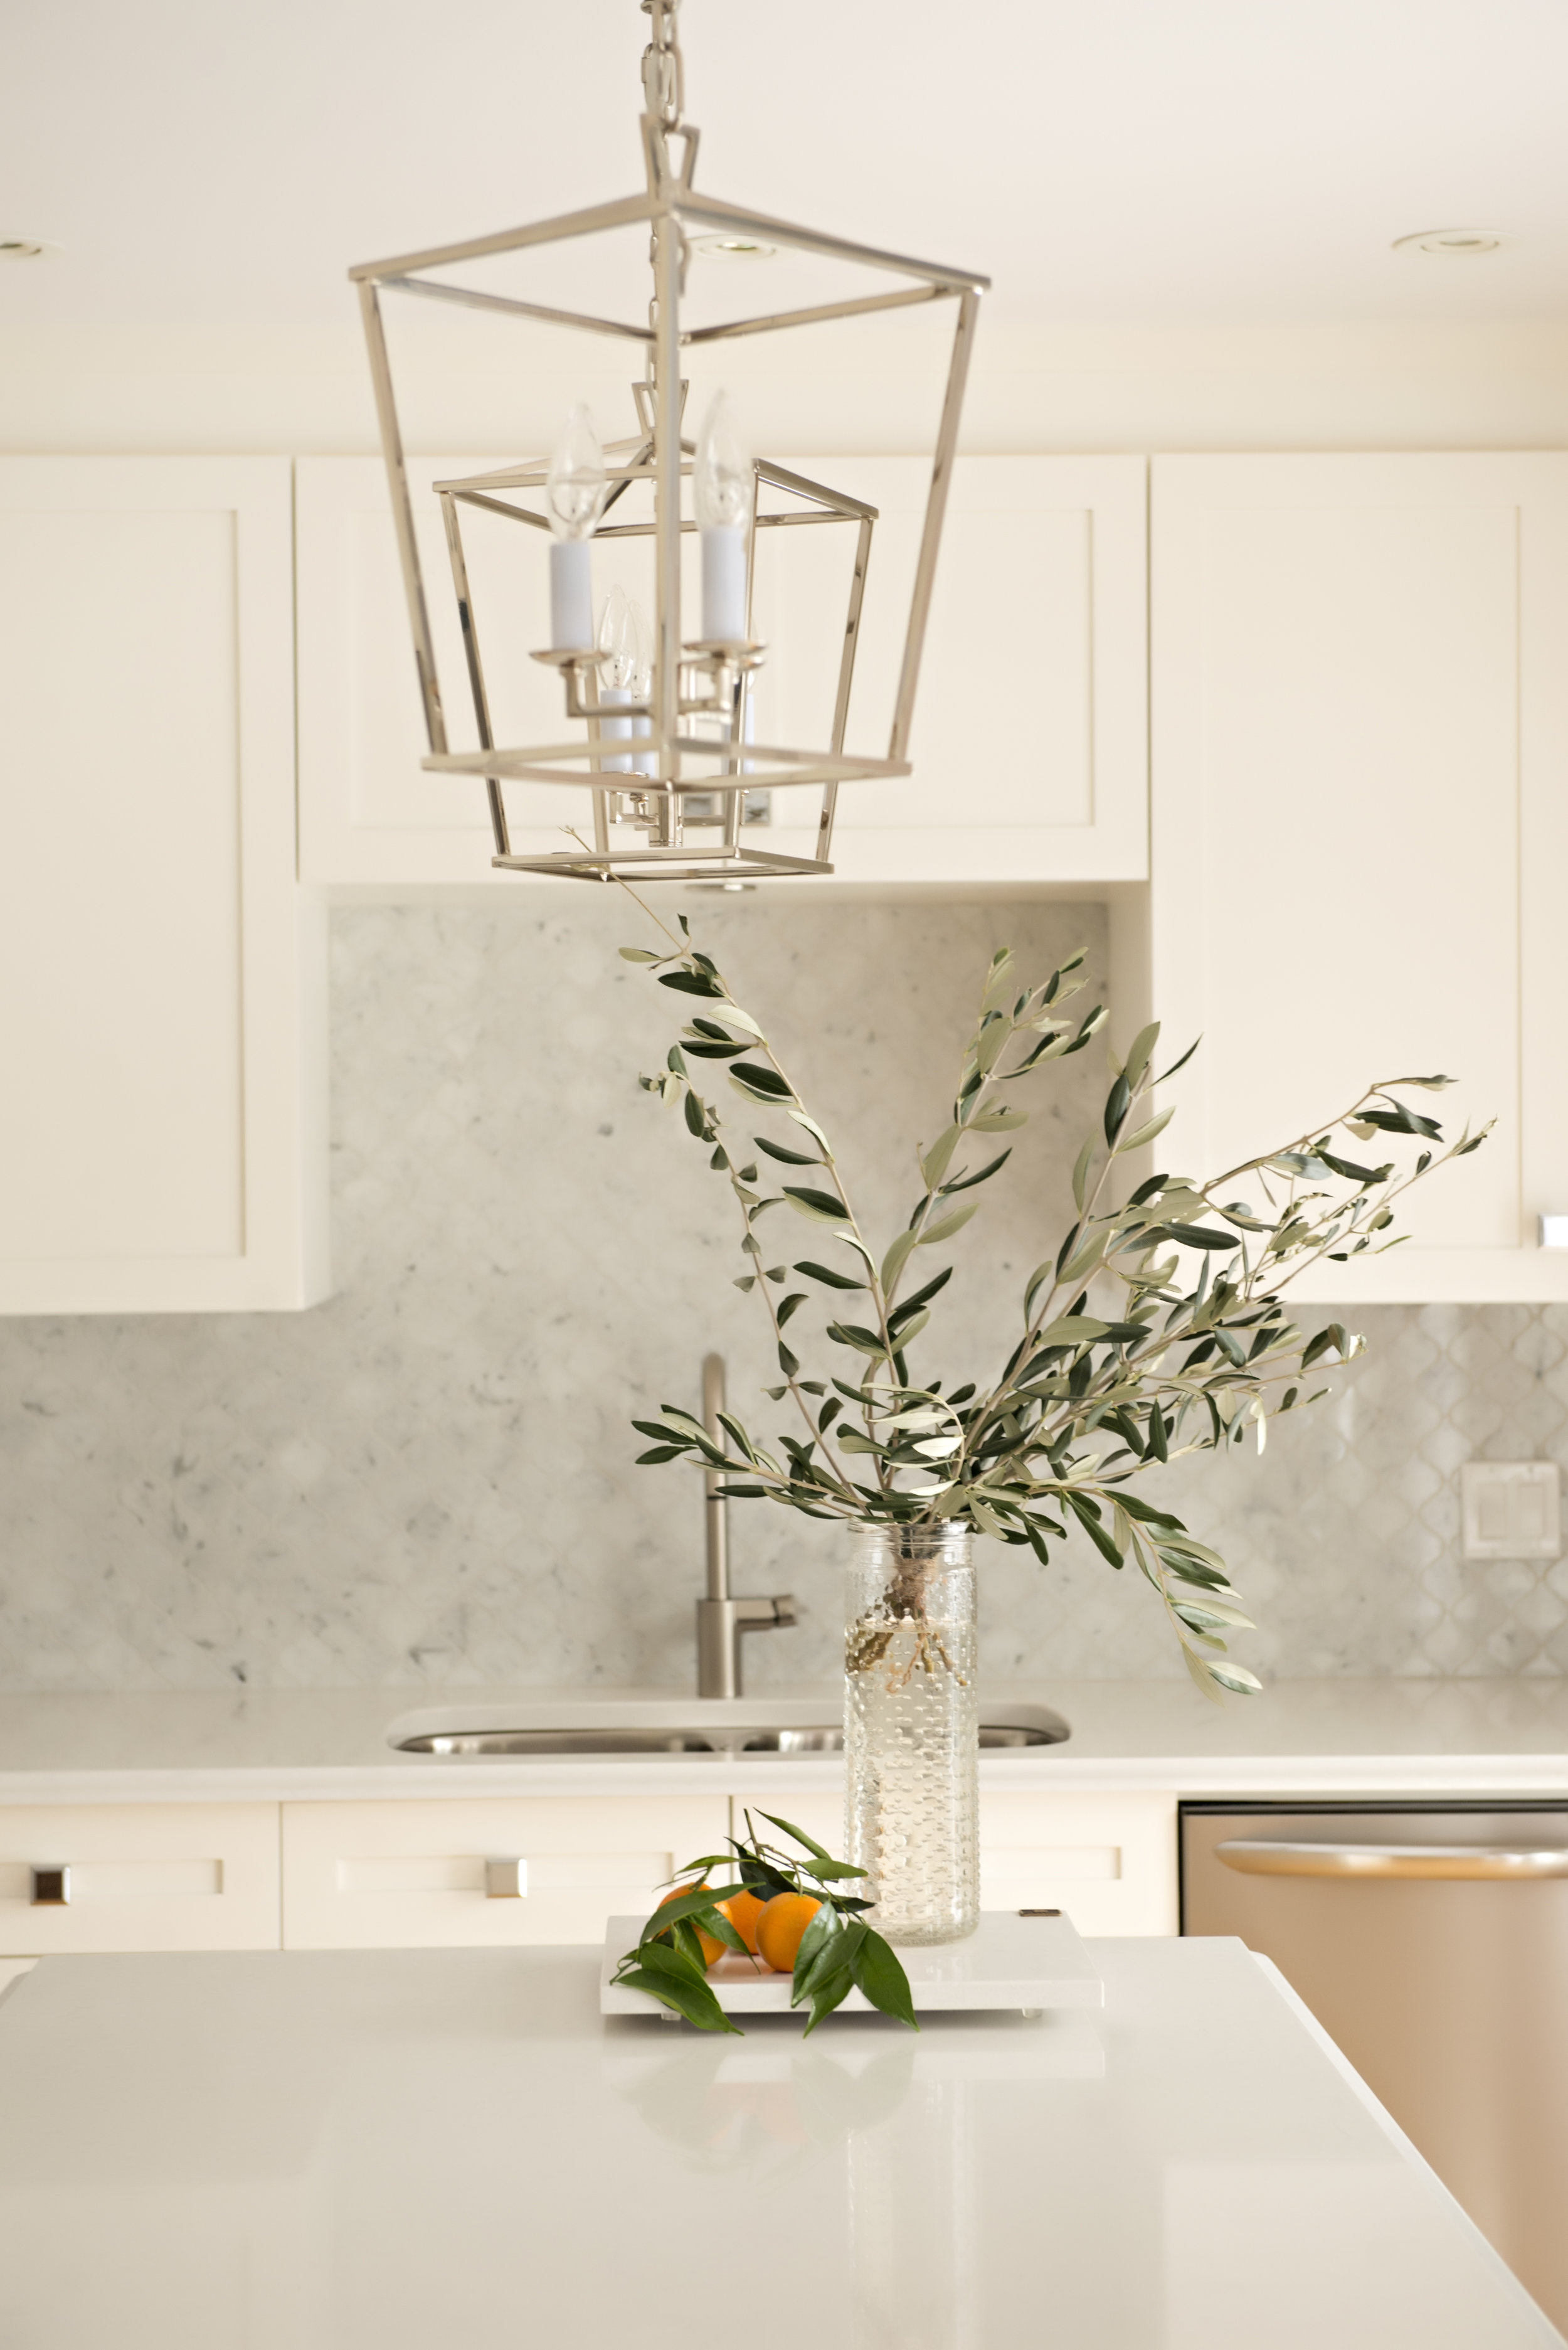 Interior-Design-Cedar-Brae-Project-Kitchen-White